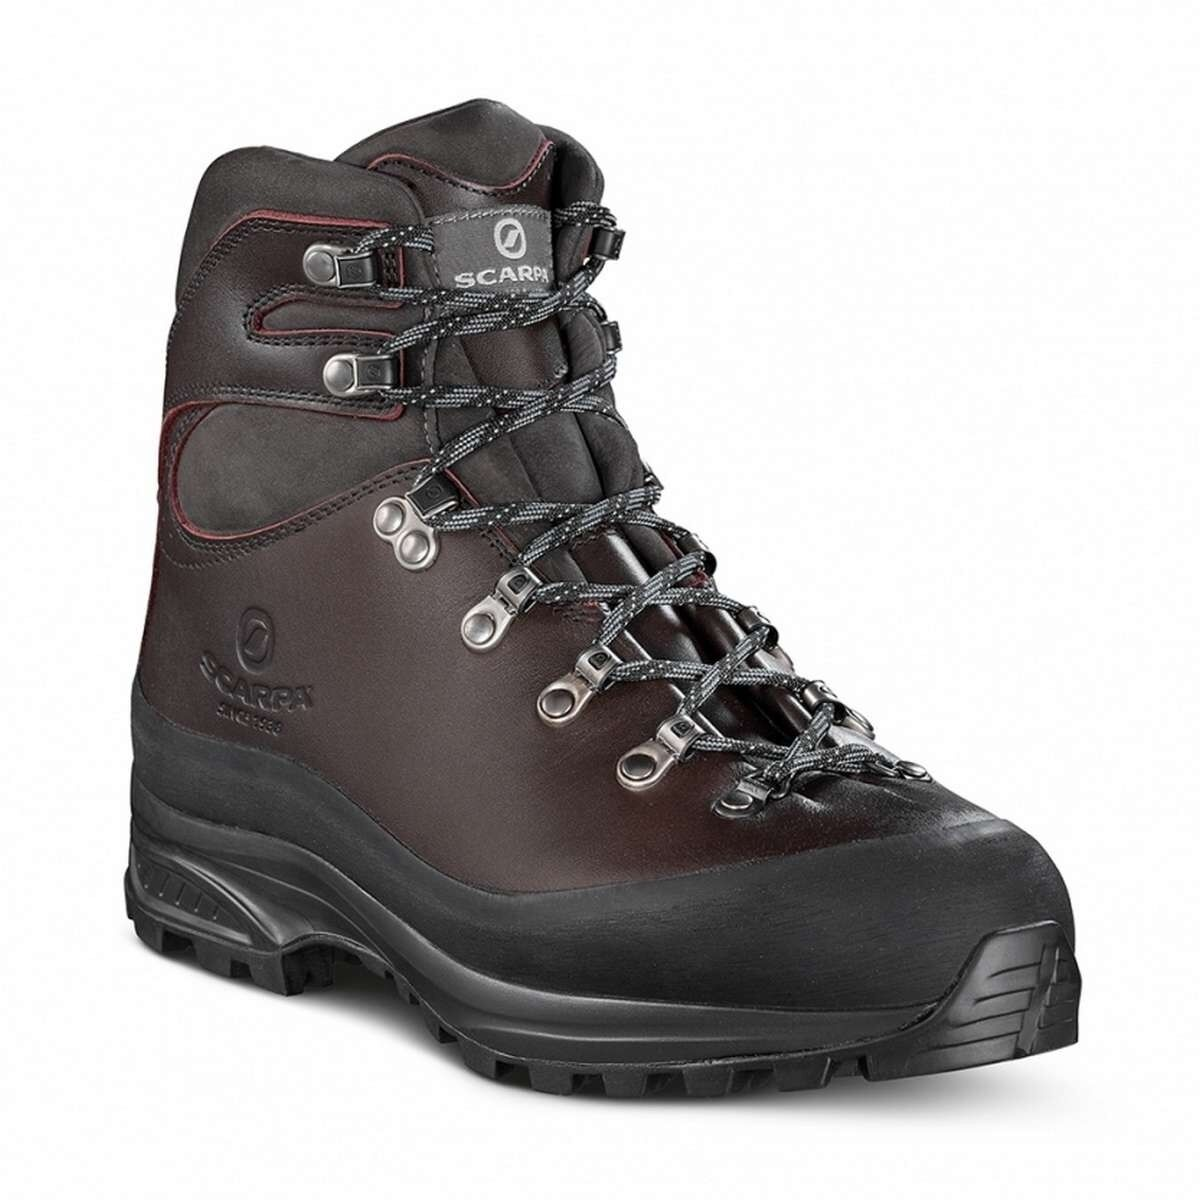 Scarpa SL Activ Men - Mens leather walking boots